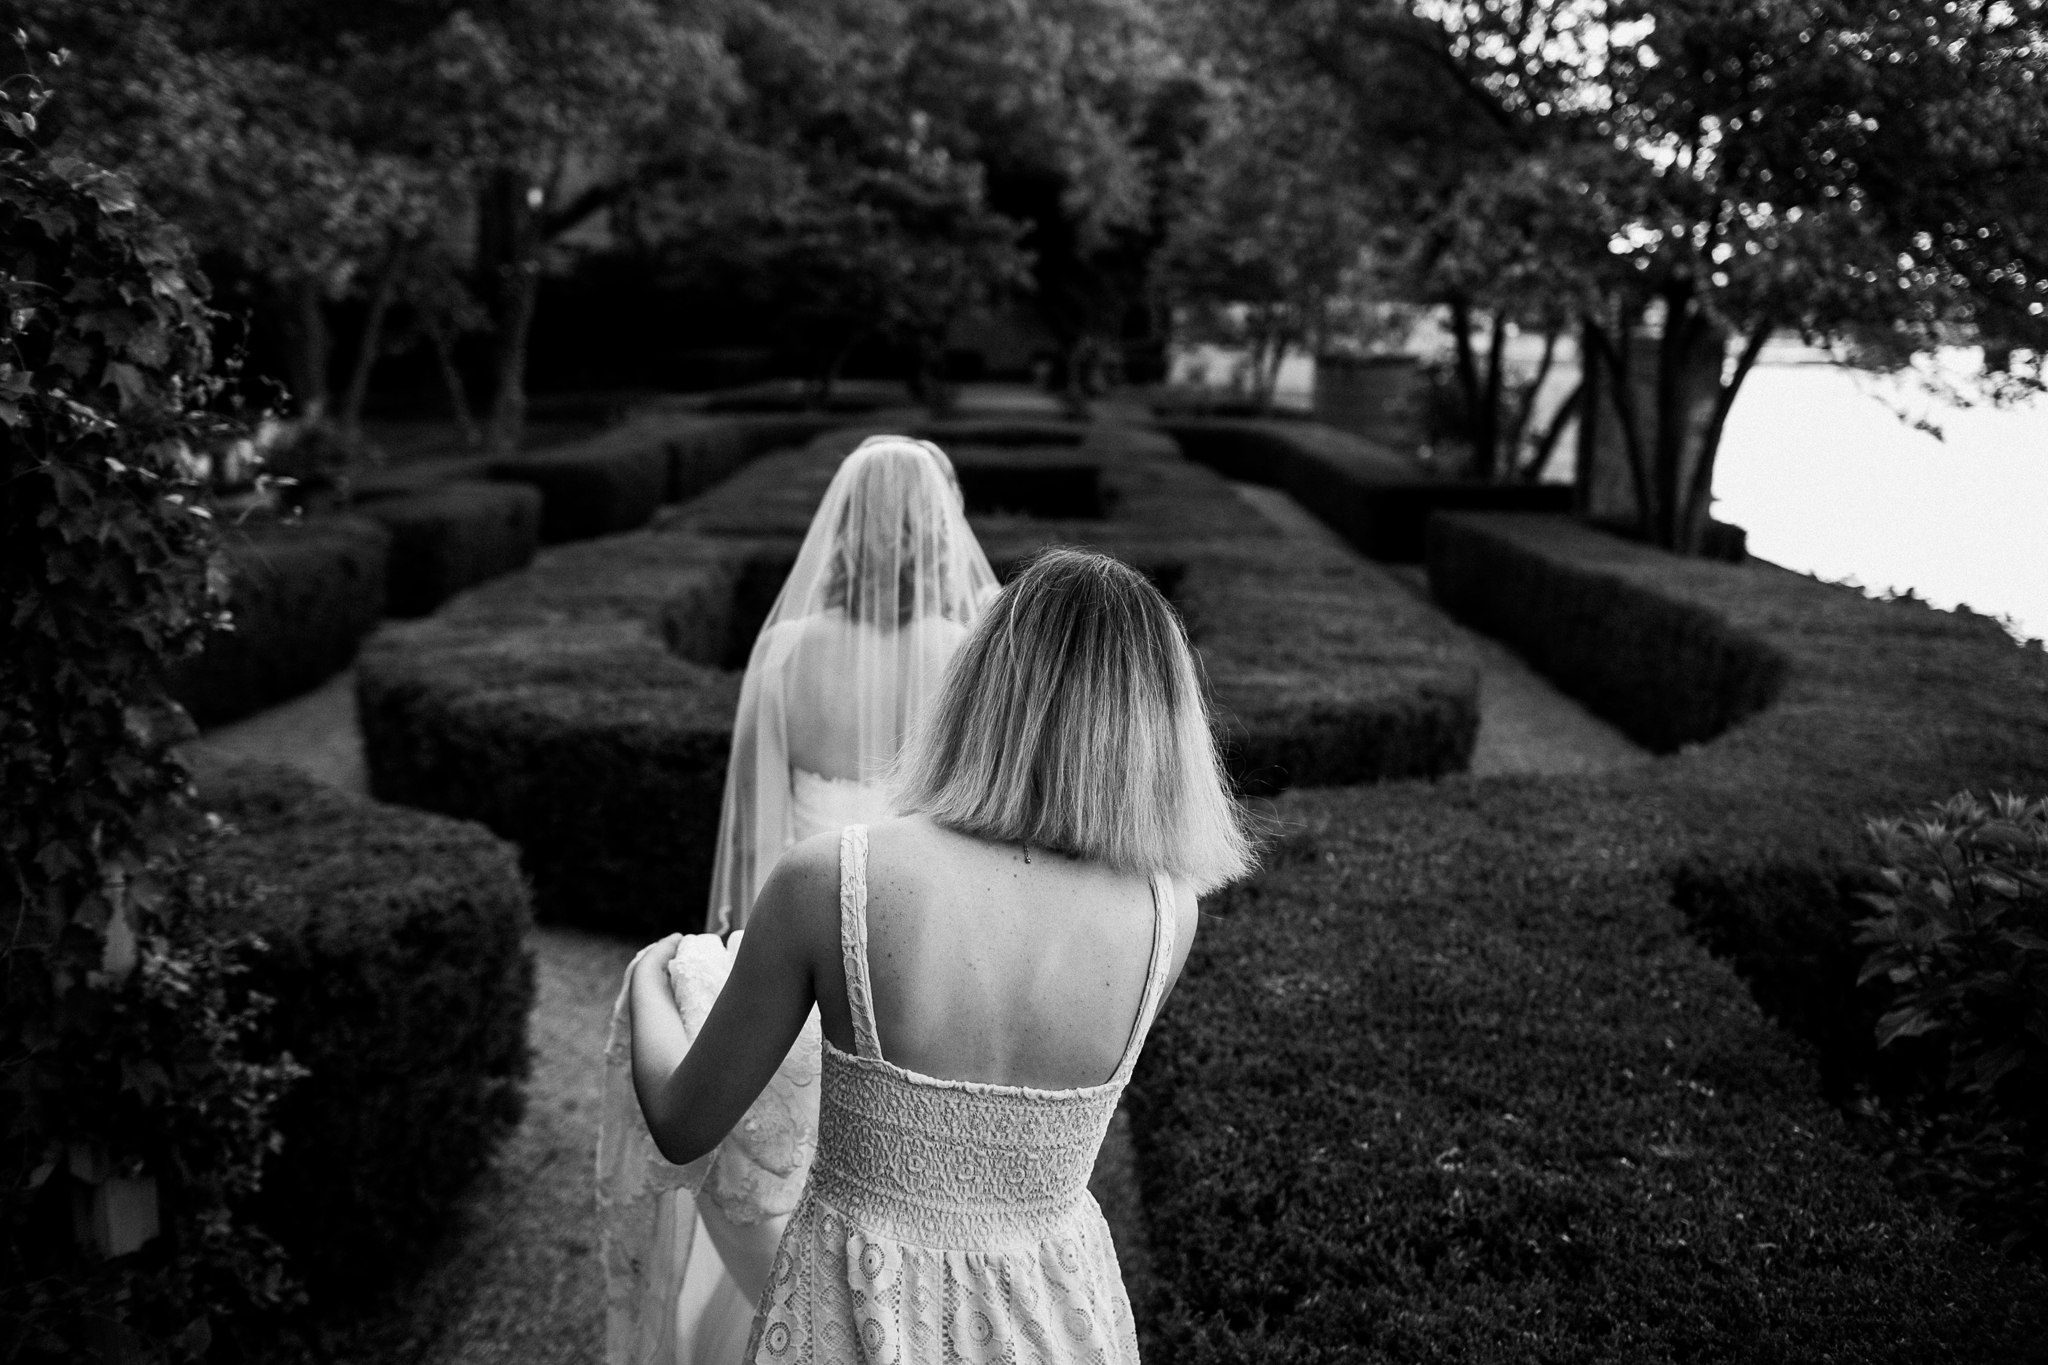 hotel_baker_st_charles_IL_wedding_photographer_0058.jpg